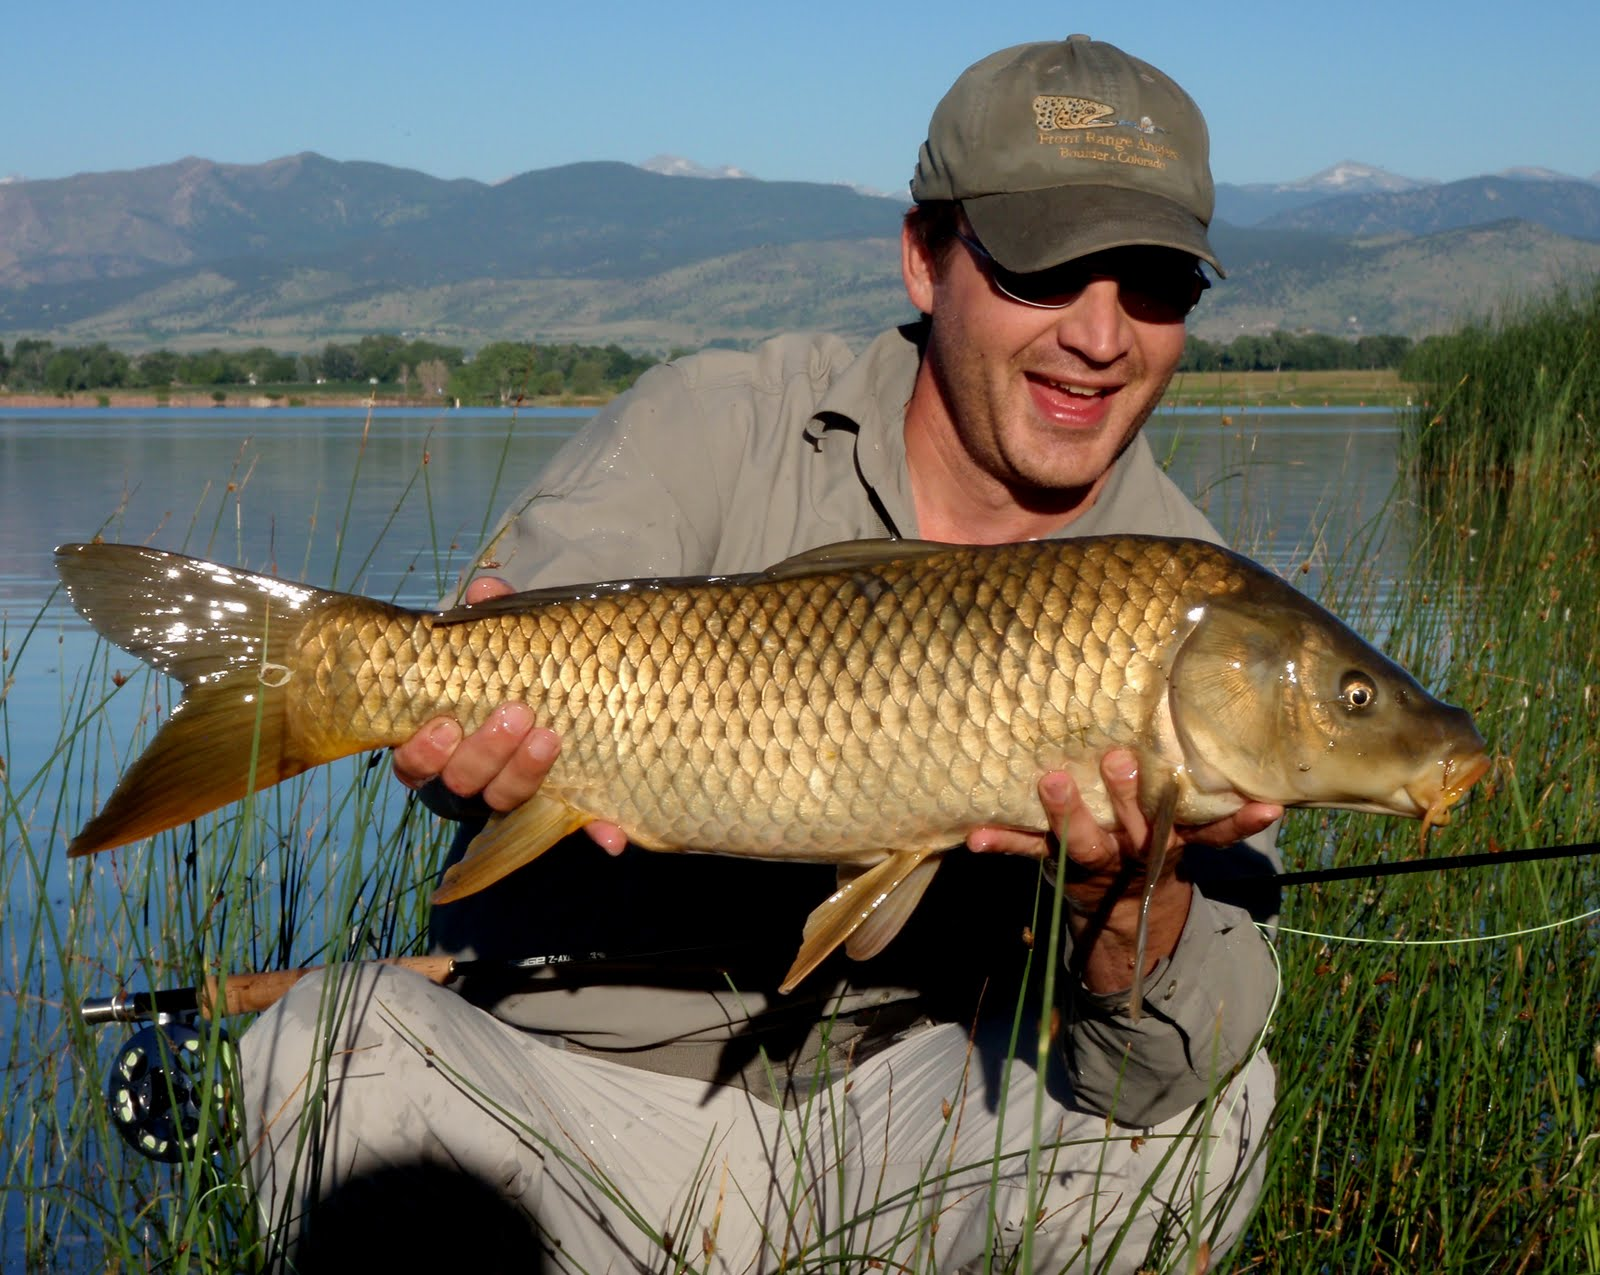 Colorado fly fishing reports carp fishin 39 is gettin 39 hot for Fly fishing carp